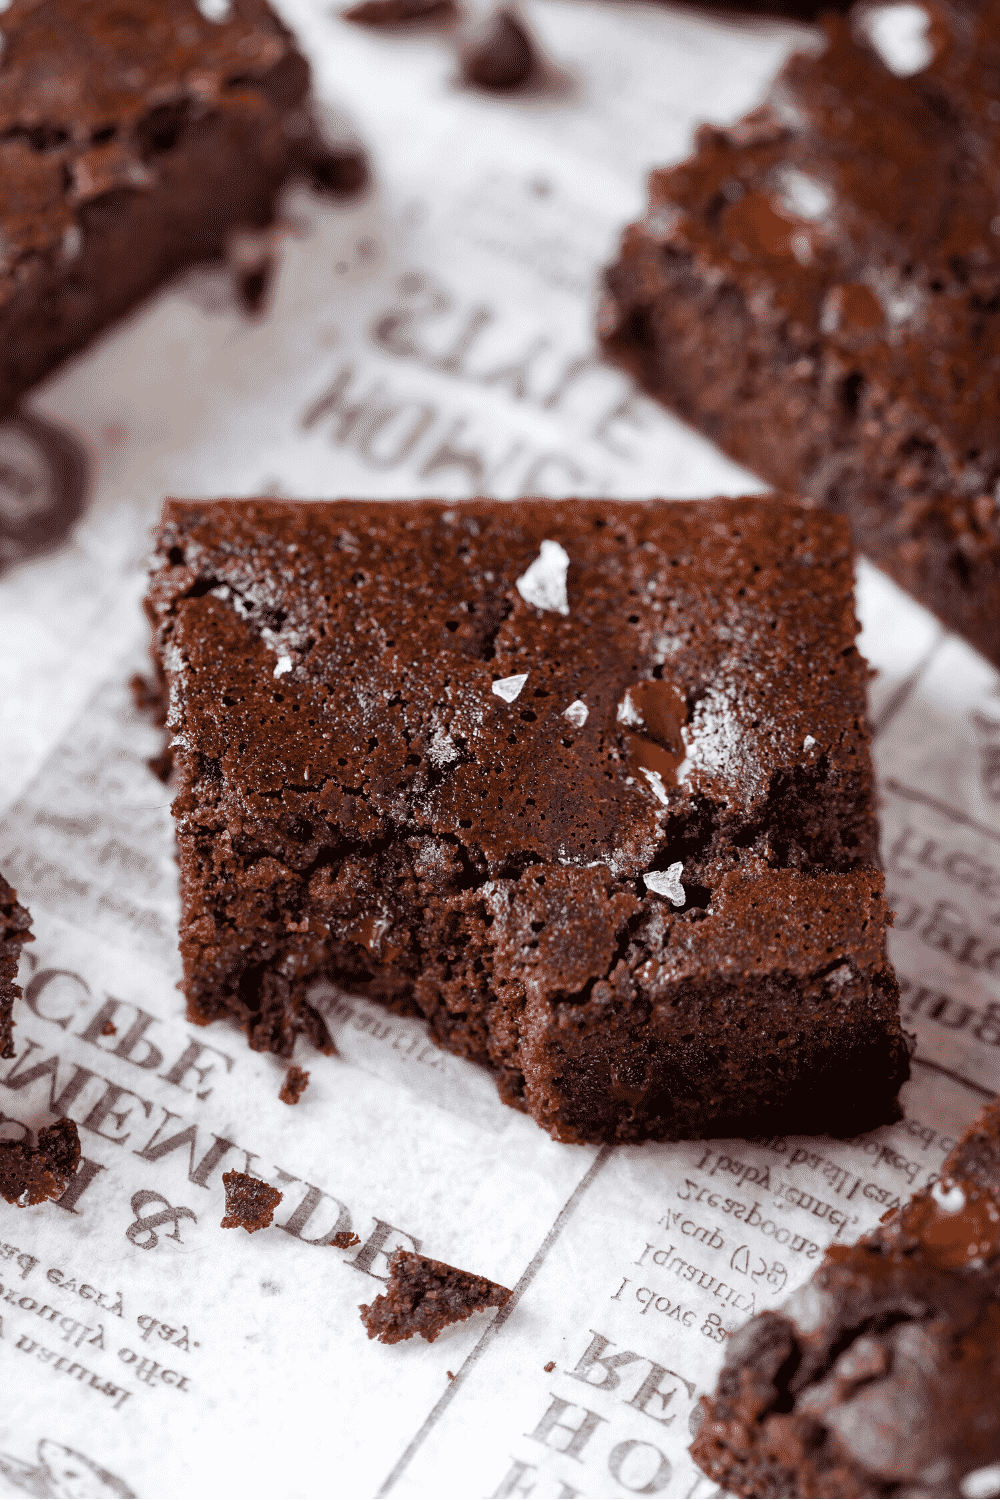 A brownie with a bite out of the one corner. The brownies is on a piece of white newspaper.